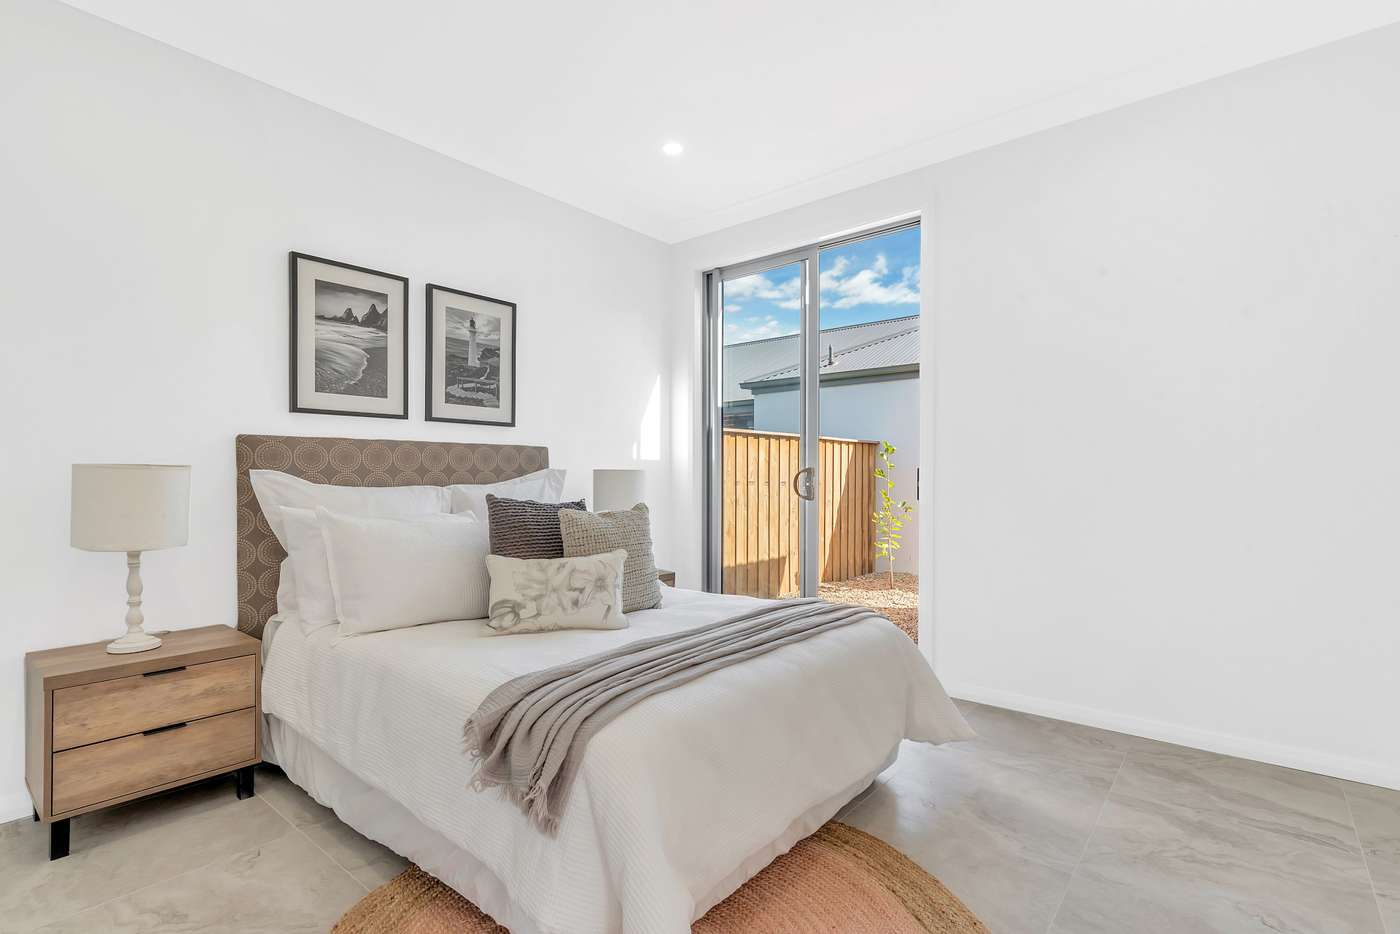 Sixth view of Homely house listing, 1 Ashbrook Drive, Catherine Field NSW 2557